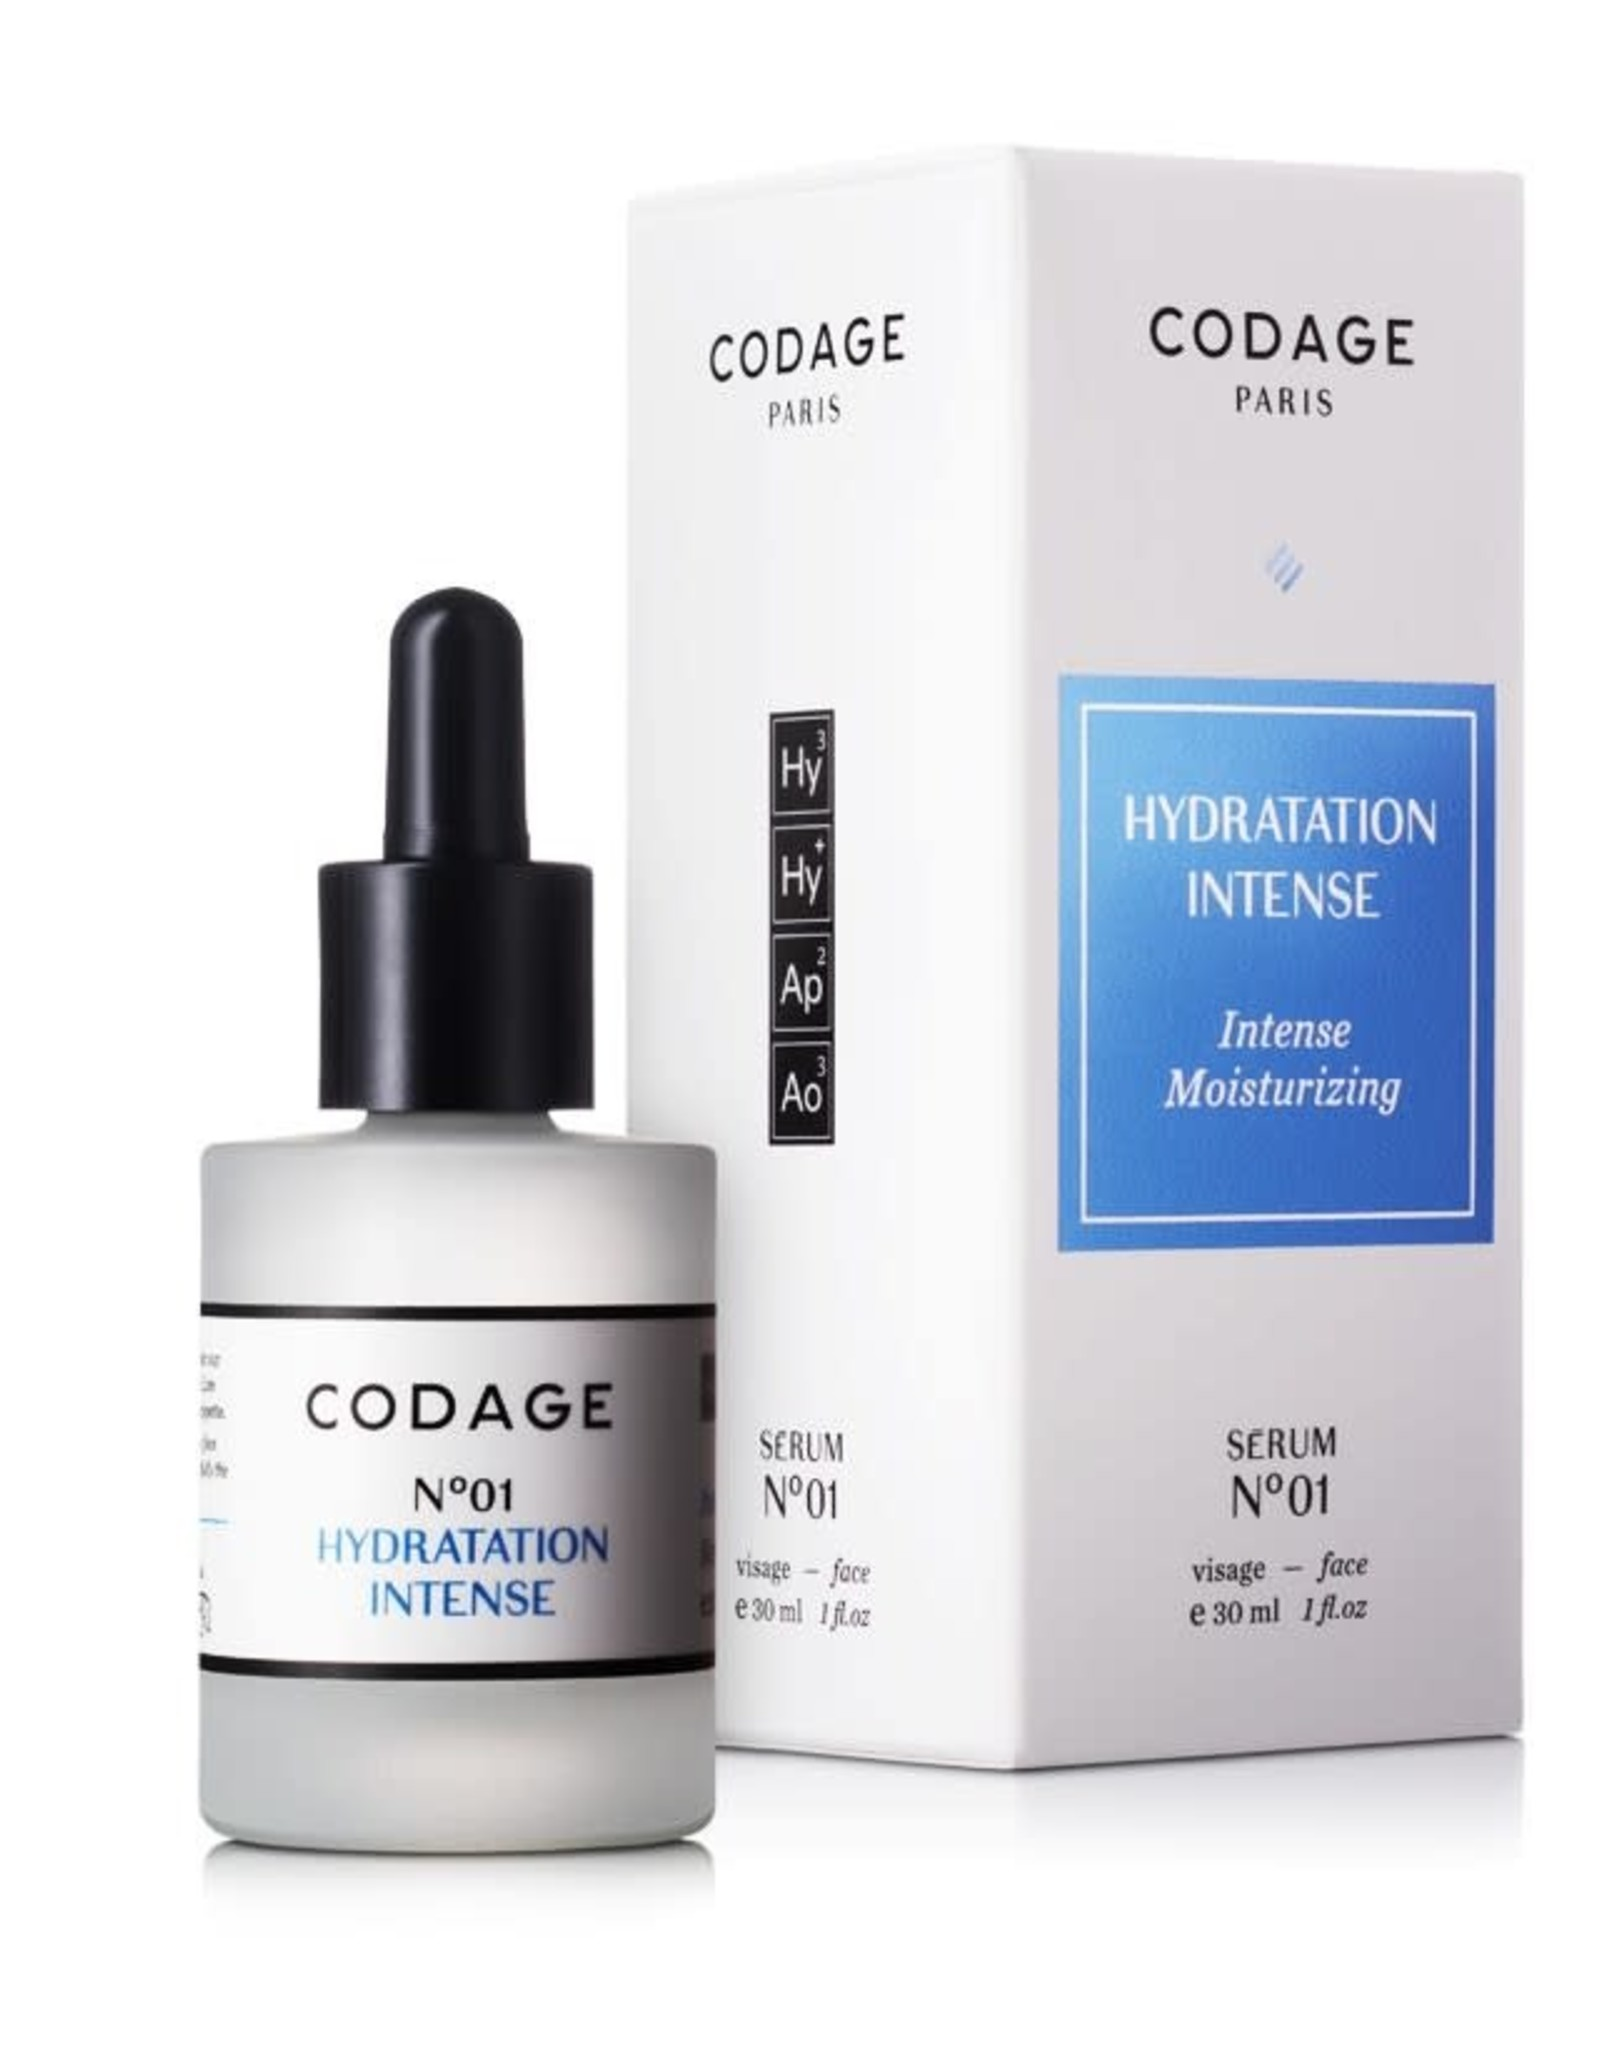 Codage Paris CODAGE PARIS -SERUM N°01  Intense moisturizing  30ML